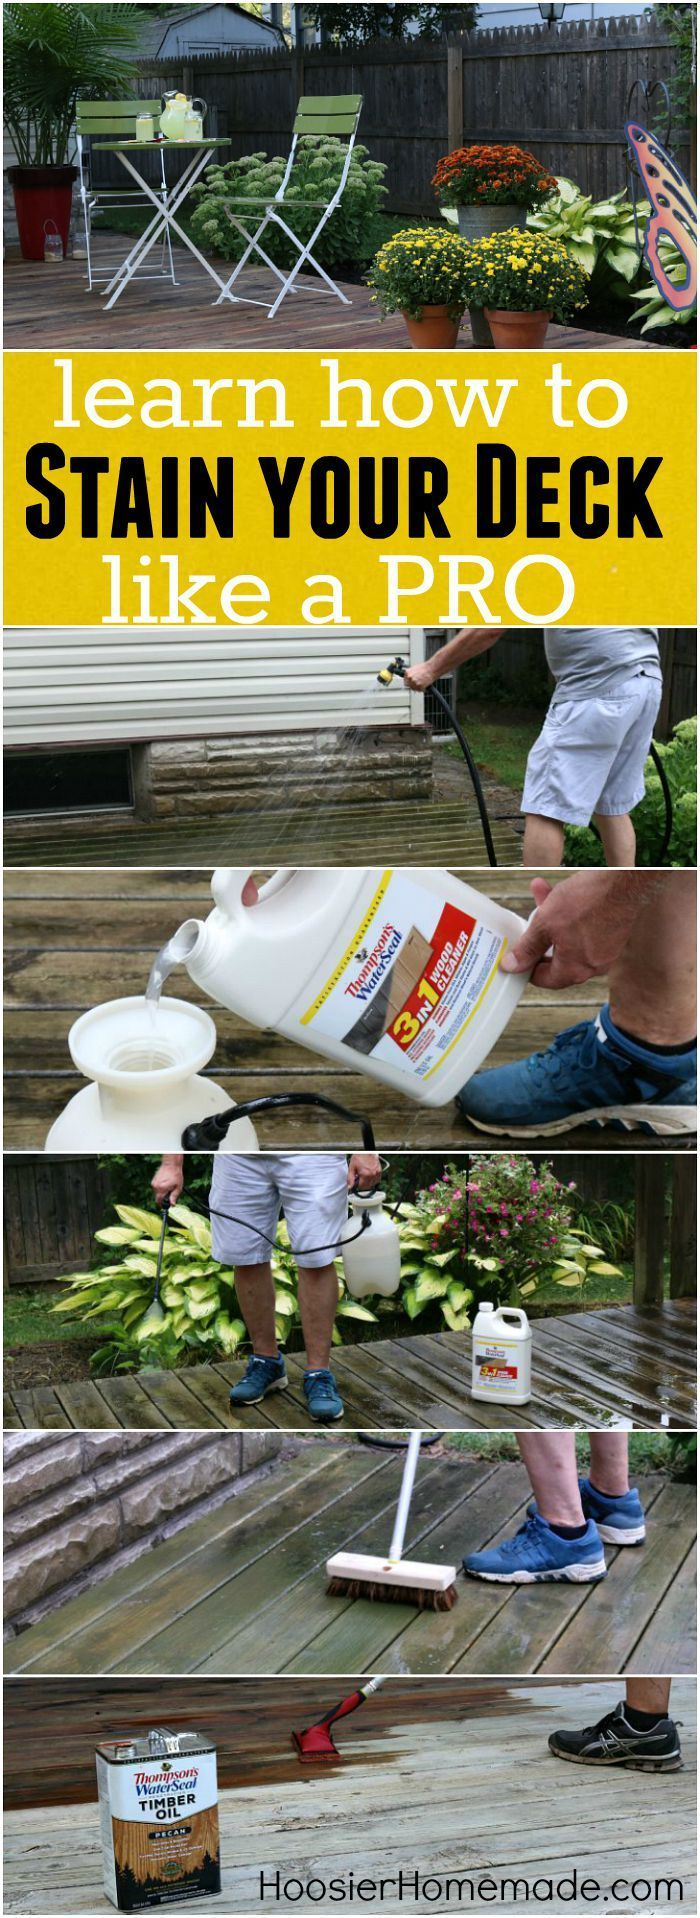 No need to be afraid to stain your deck! These tips, easy to follow directions and list of tools you will need will help! Learn how to clean, prepare and stain your deck...like a PRO! Click on the Photo for Directions on How to Stain a Deck for Homeowners!